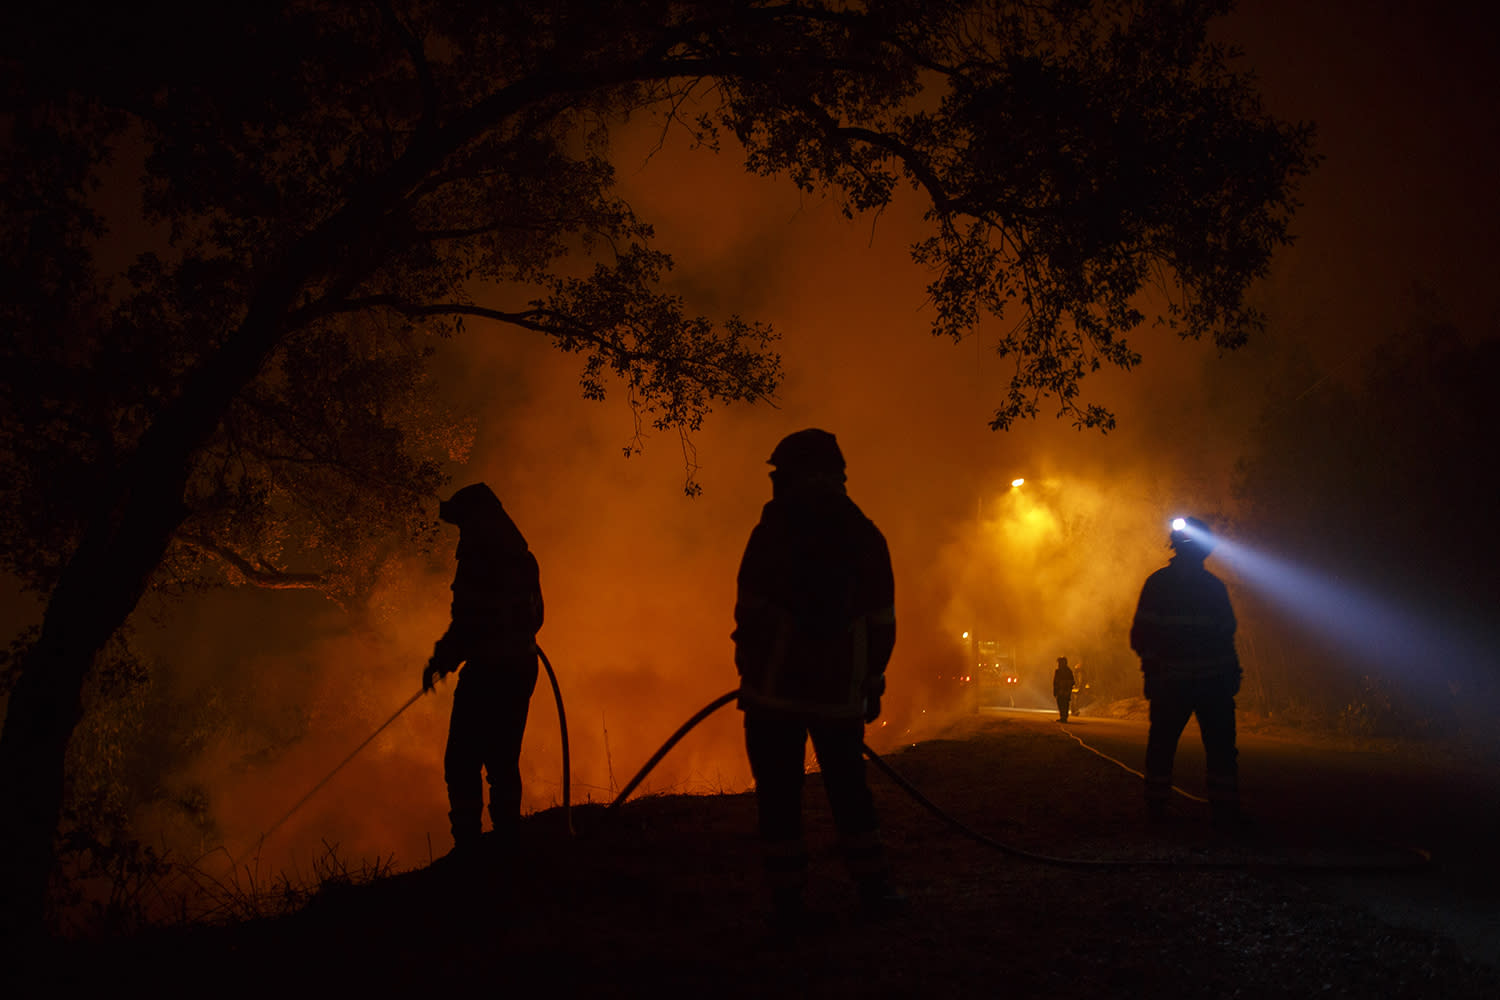 <p>Firefighters battle a forest wildfire next to Vilarinho village, near Lousa on Oct. 16, 2017 in Coimbra region, Portugal. (Photo: Pablo Blazquez Dominguez/Getty Images) </p>